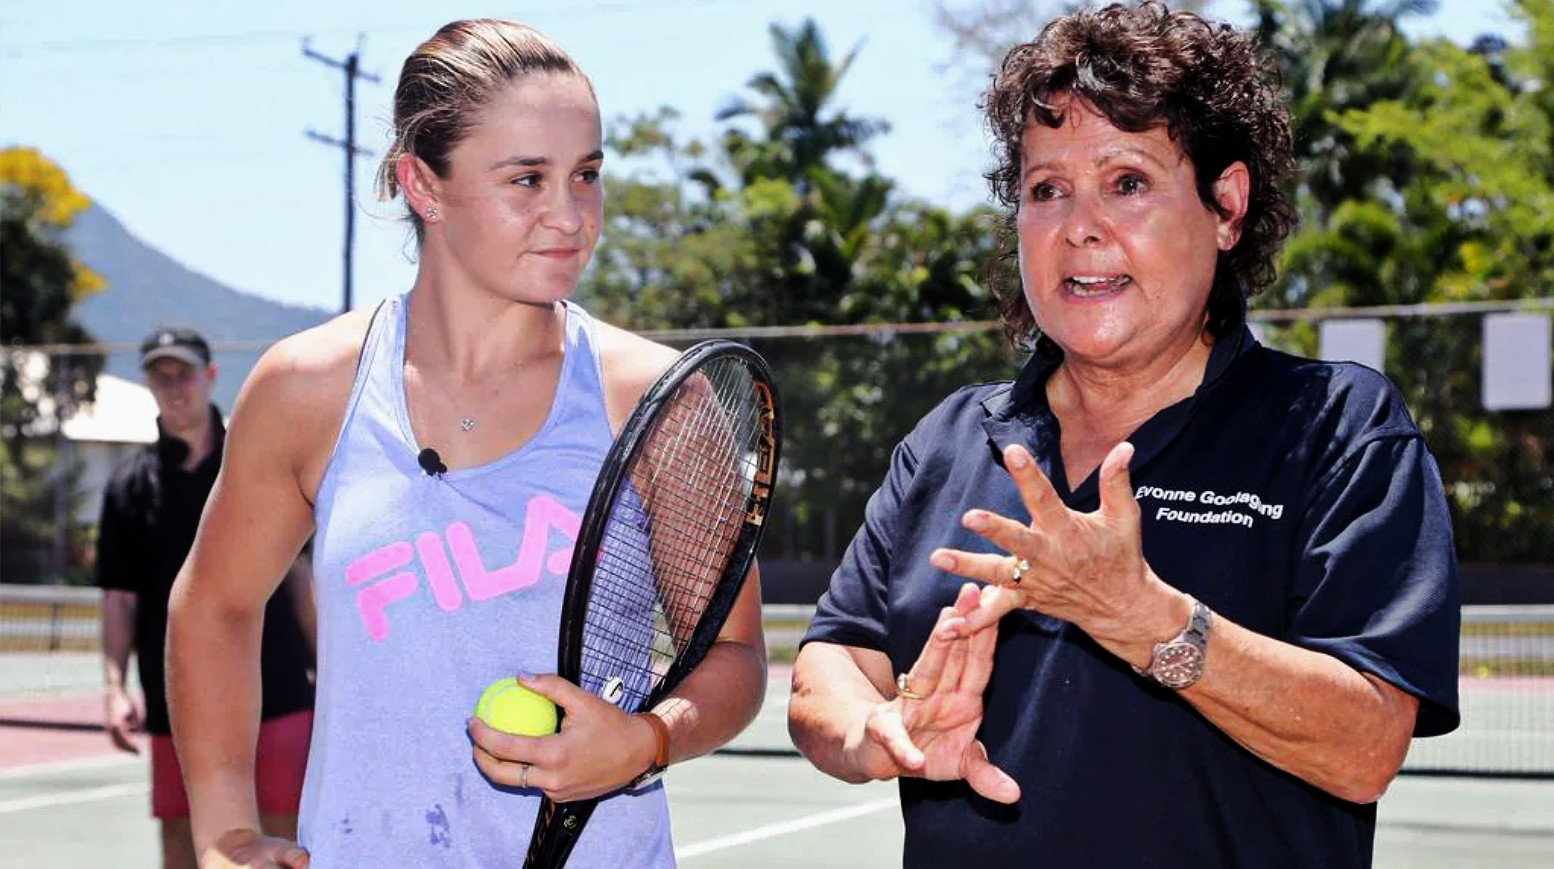 Ash Barty and Evonne Cawley